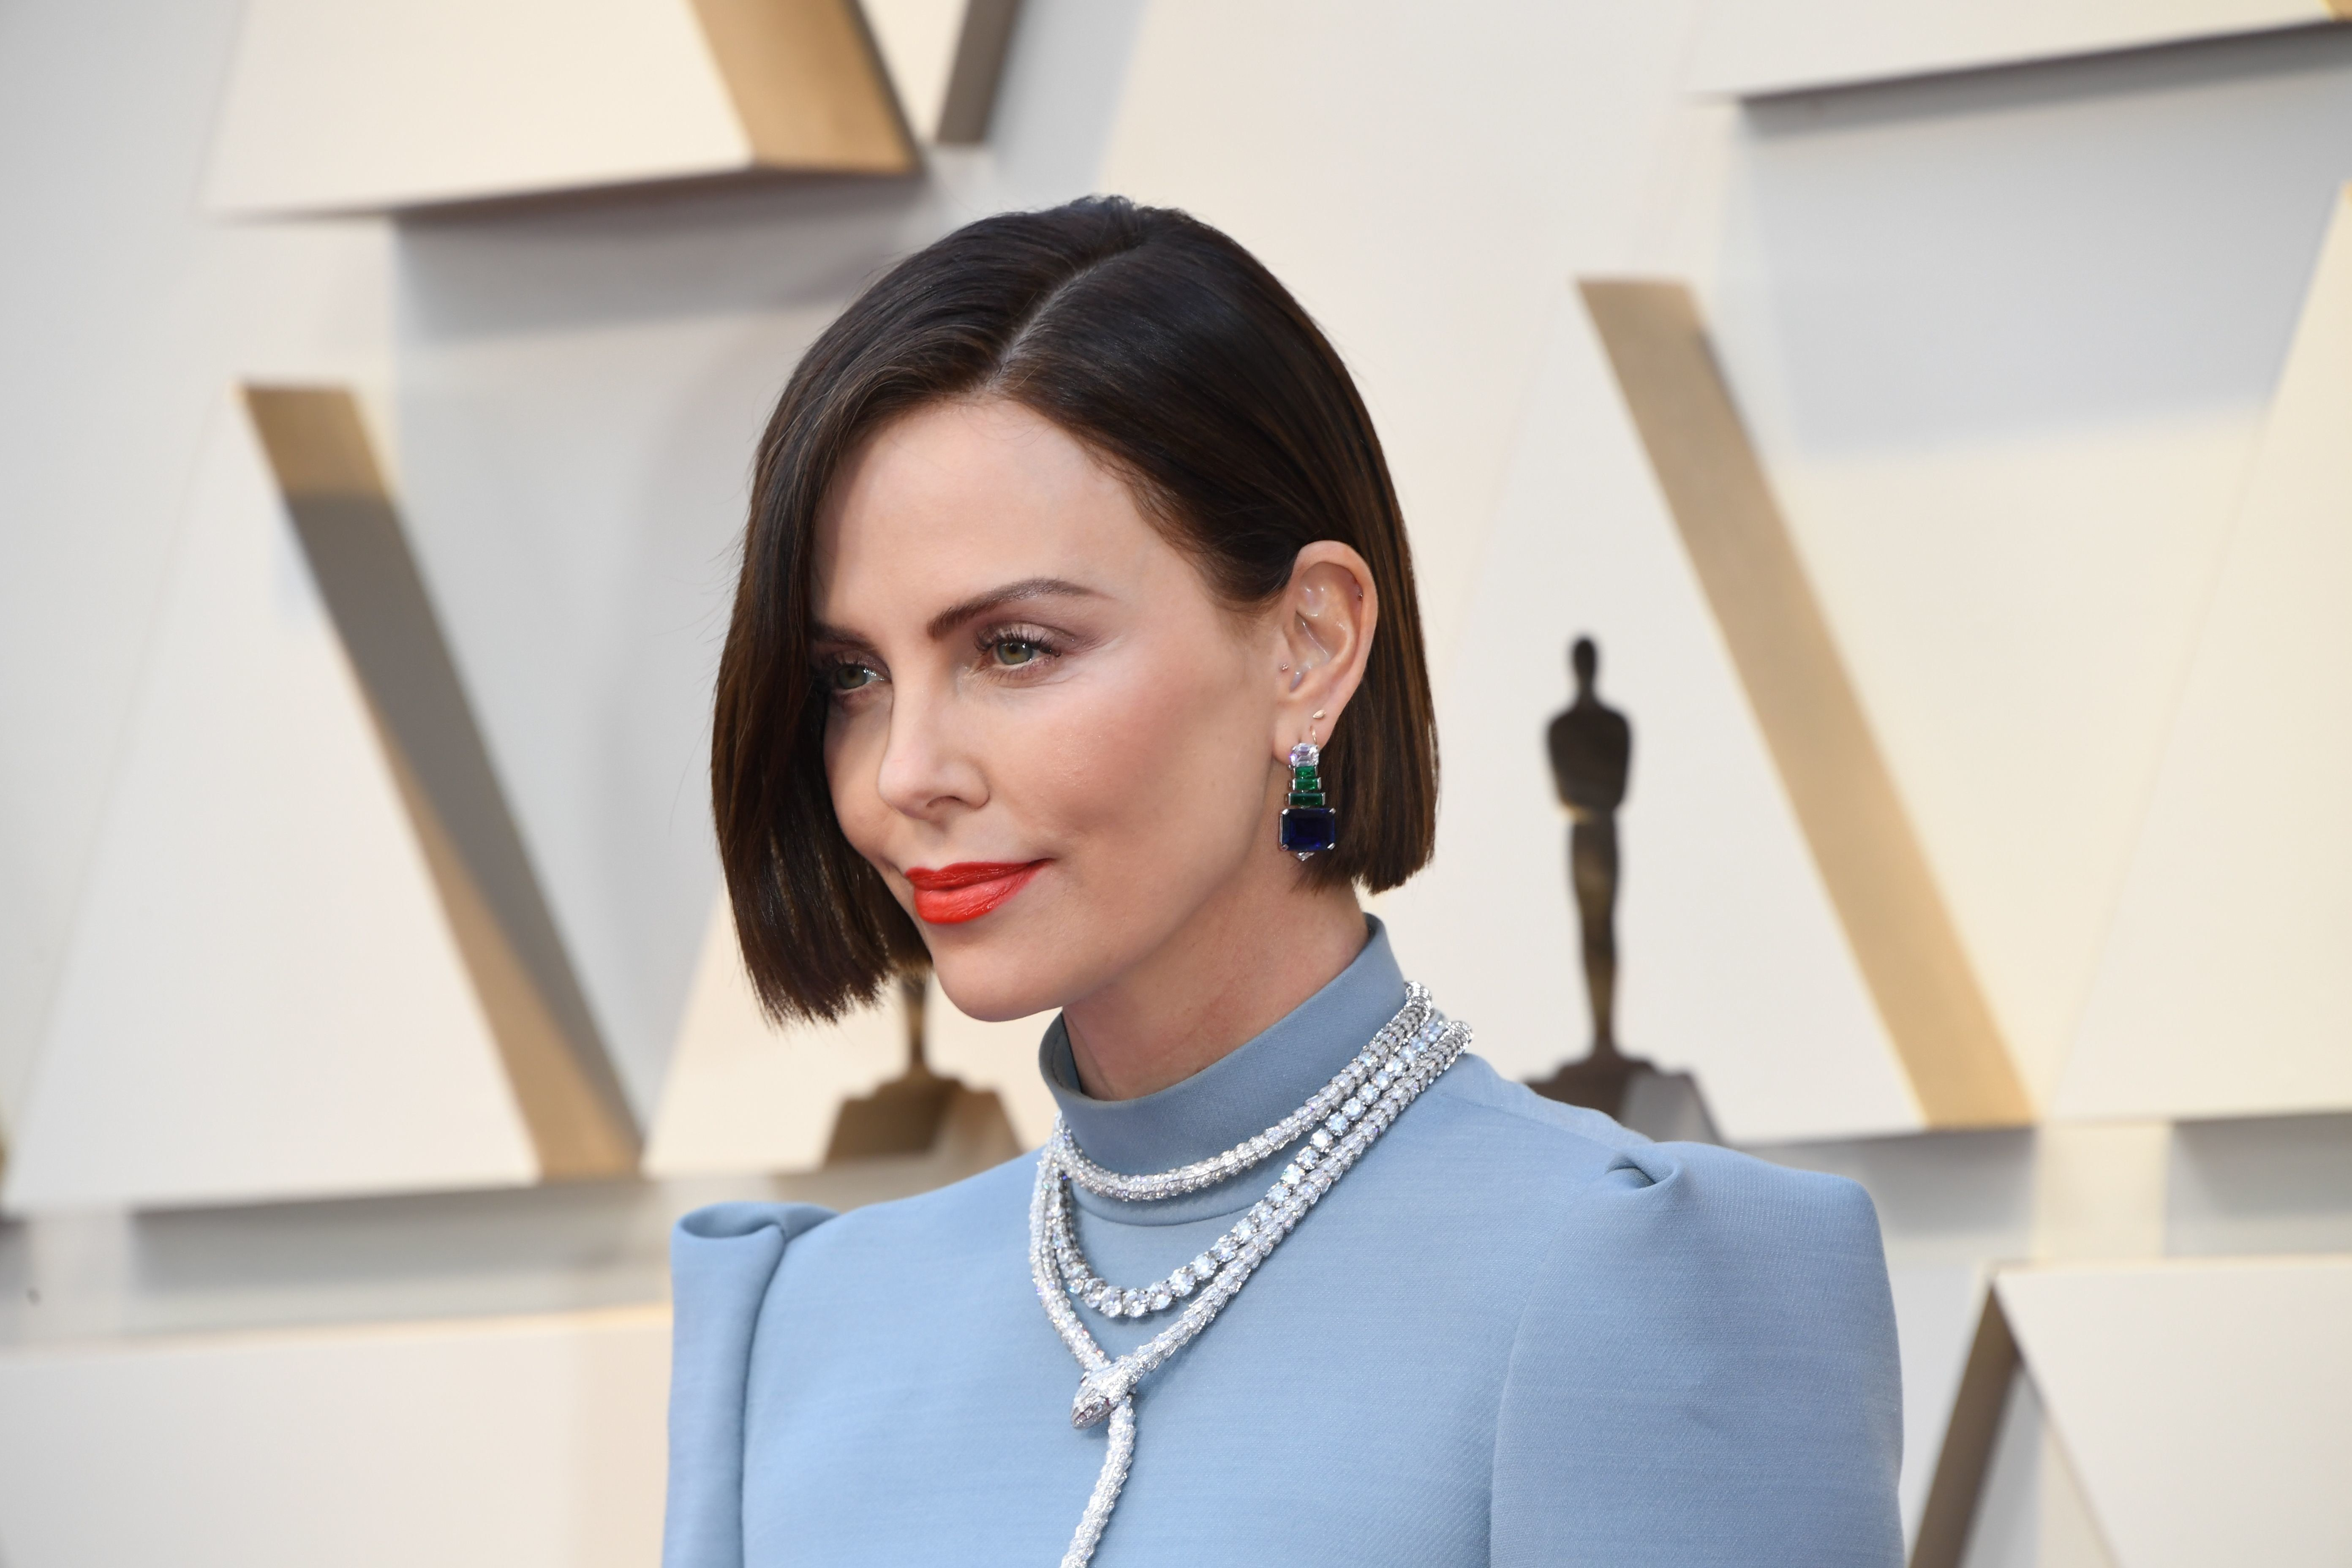 Southafrican actress Charlize Theron arrives for the 91st Annual Academy Awards at the Dolby Theatre in Hollywood, California on February 24, 2019. (Photo by Mark RALSTON / AFP)        (Photo credit should read MARK RALSTON/AFP/Getty Images)